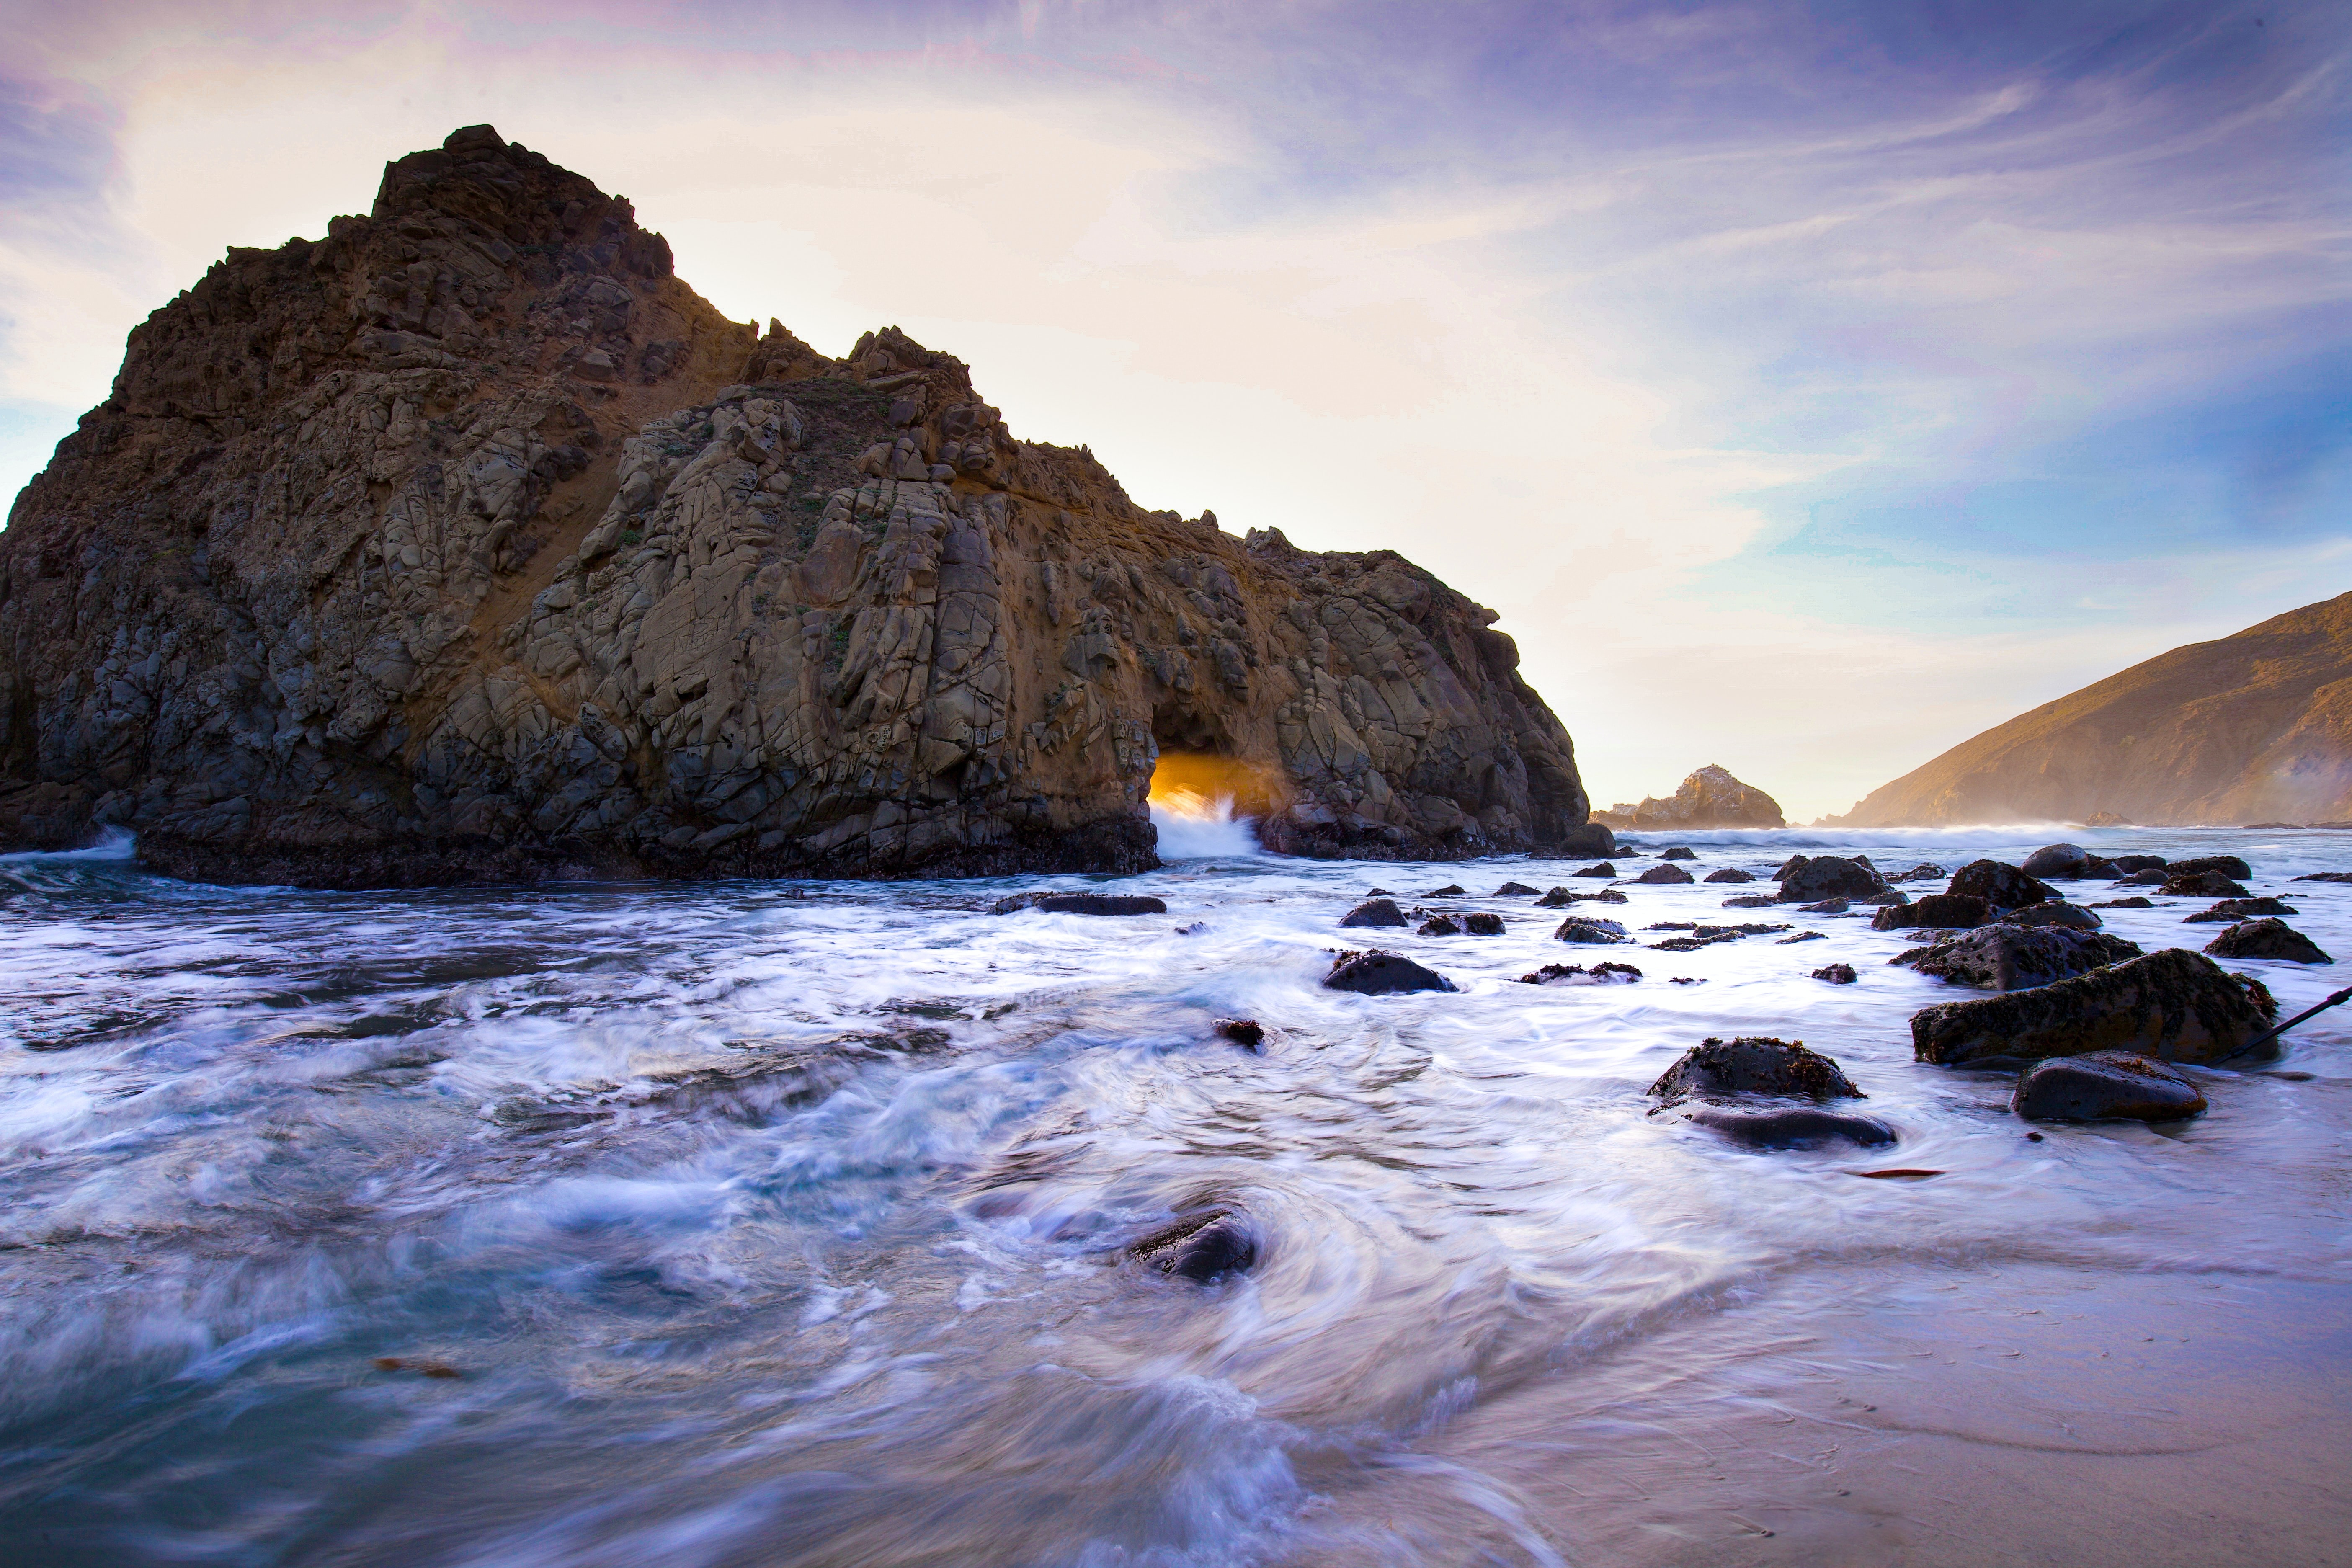 time lapse photography of body of water near rock formation